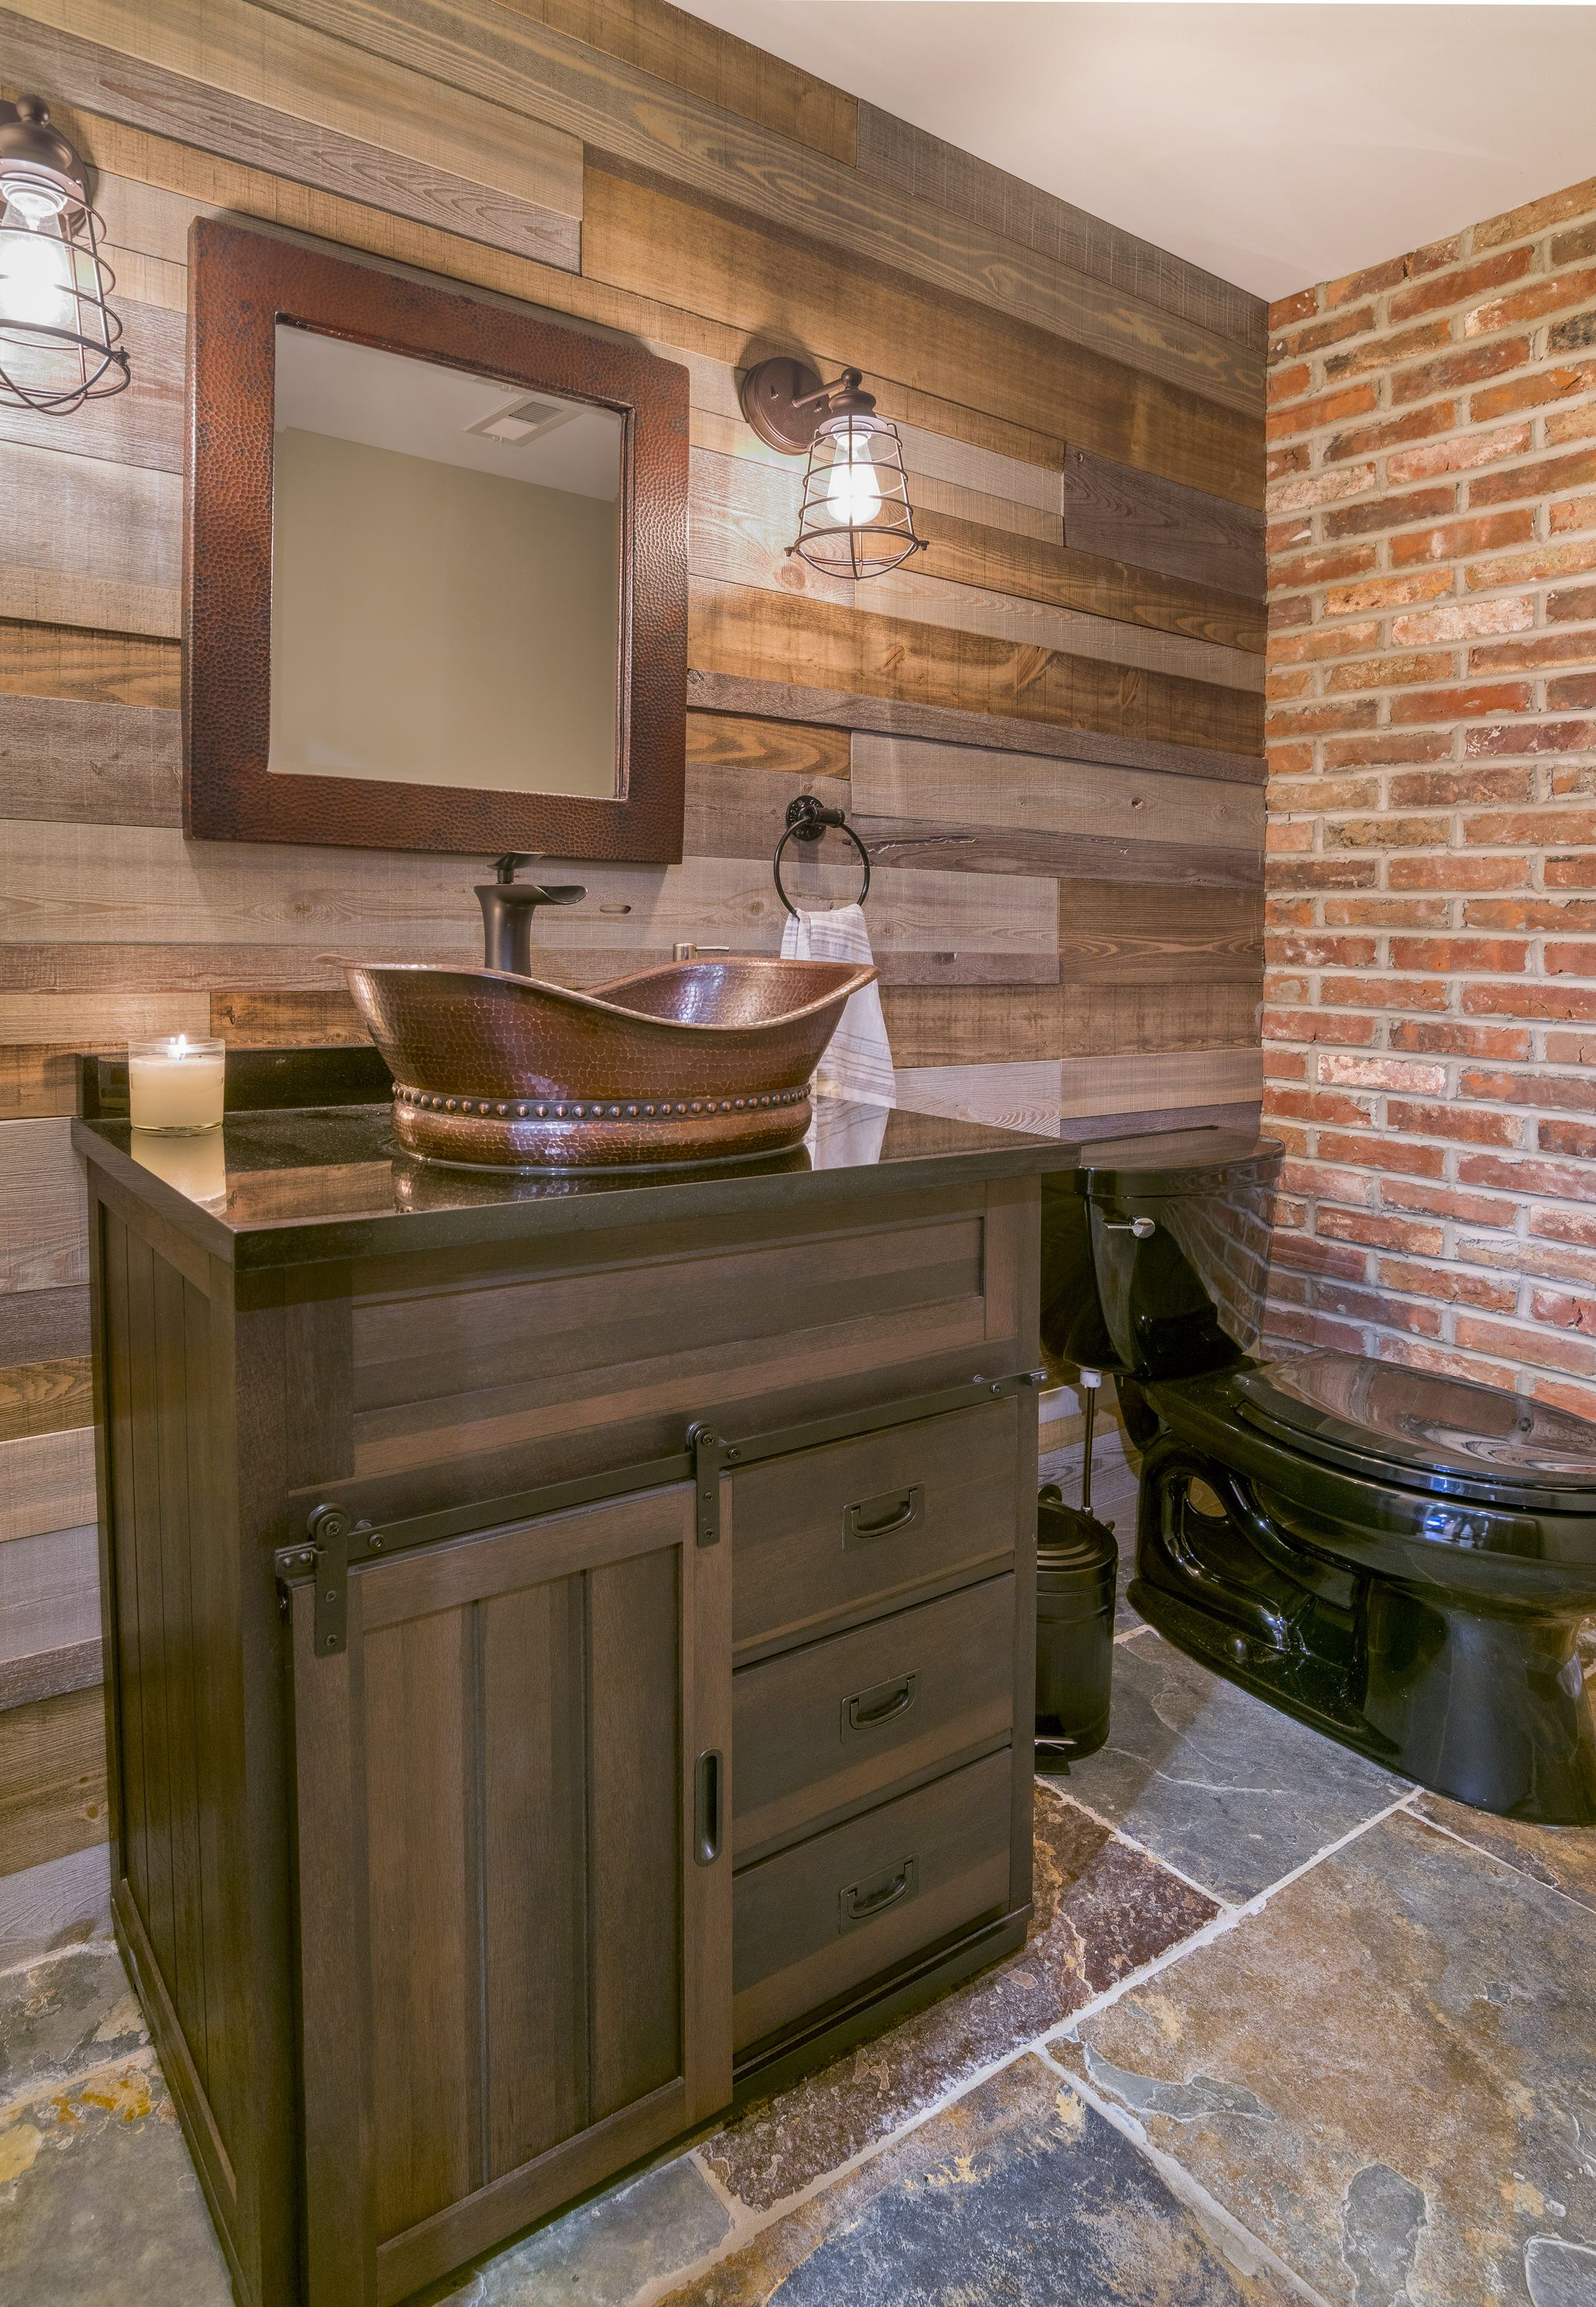 Beautiful area created in this bathroom renovation by ... on Disabatino Outdoor Living id=37326